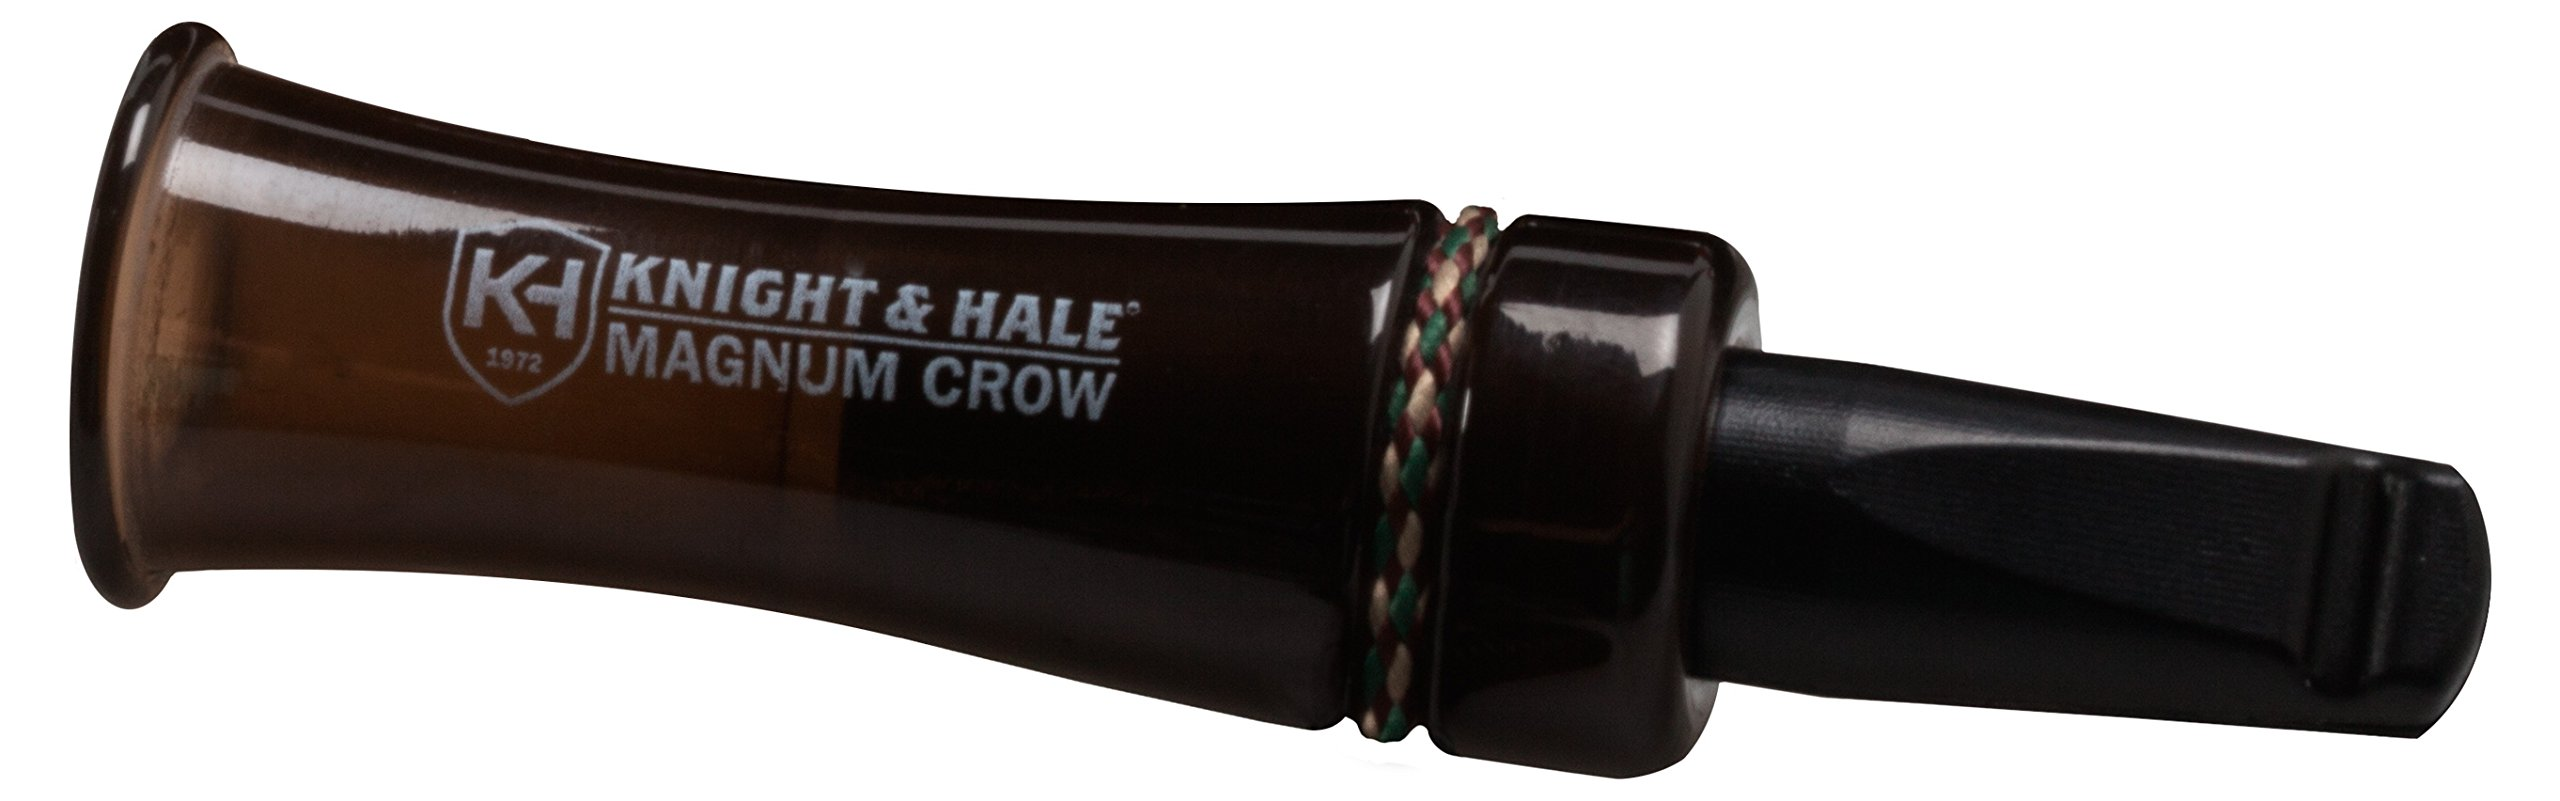 Knight & Hale Magnum Crow Call